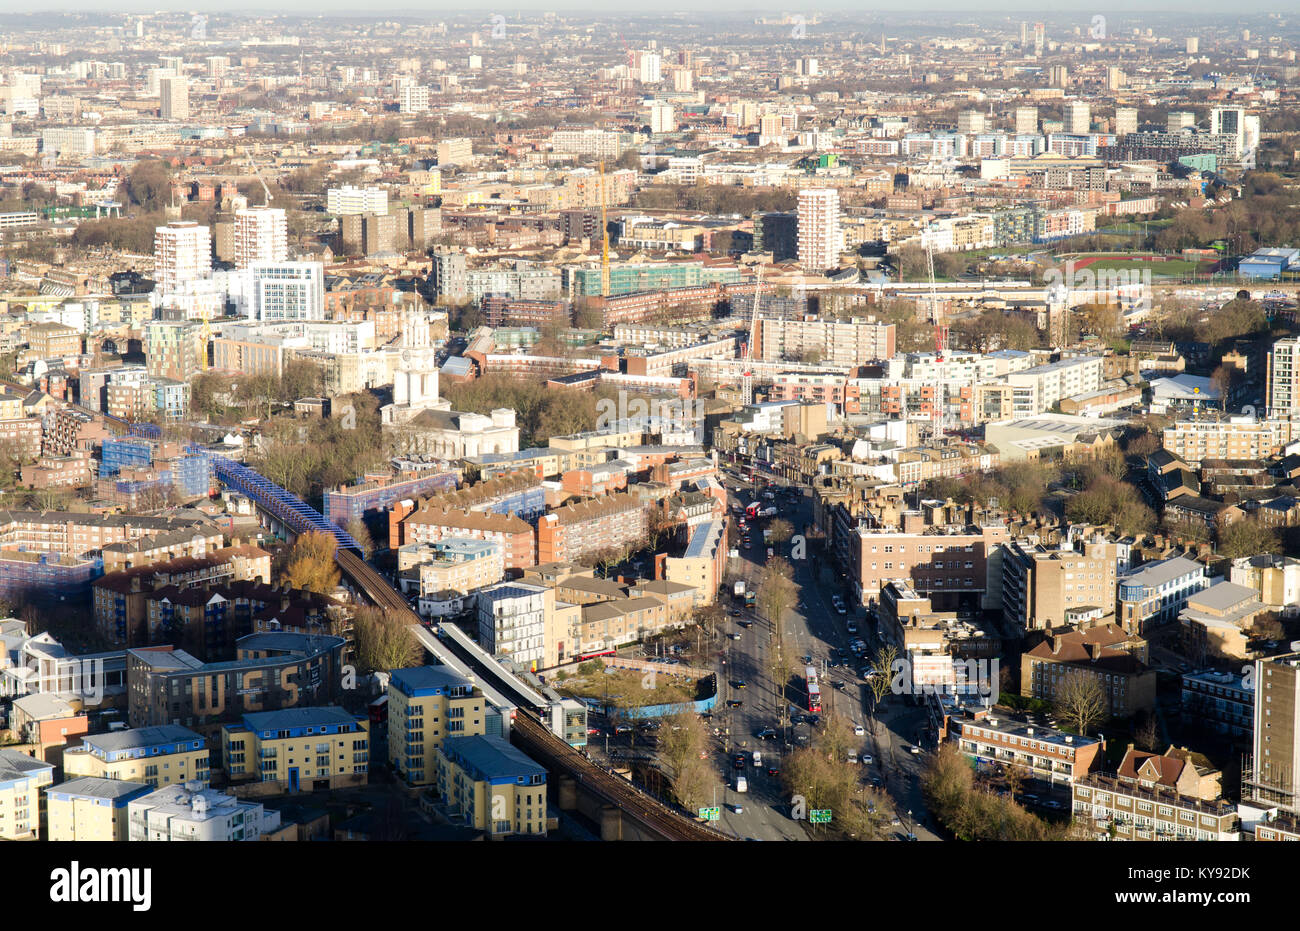 Looking down on London's East End neighbourhoods of Westferry, Limehouse and Mile End from the Docklands Canary - Stock Image